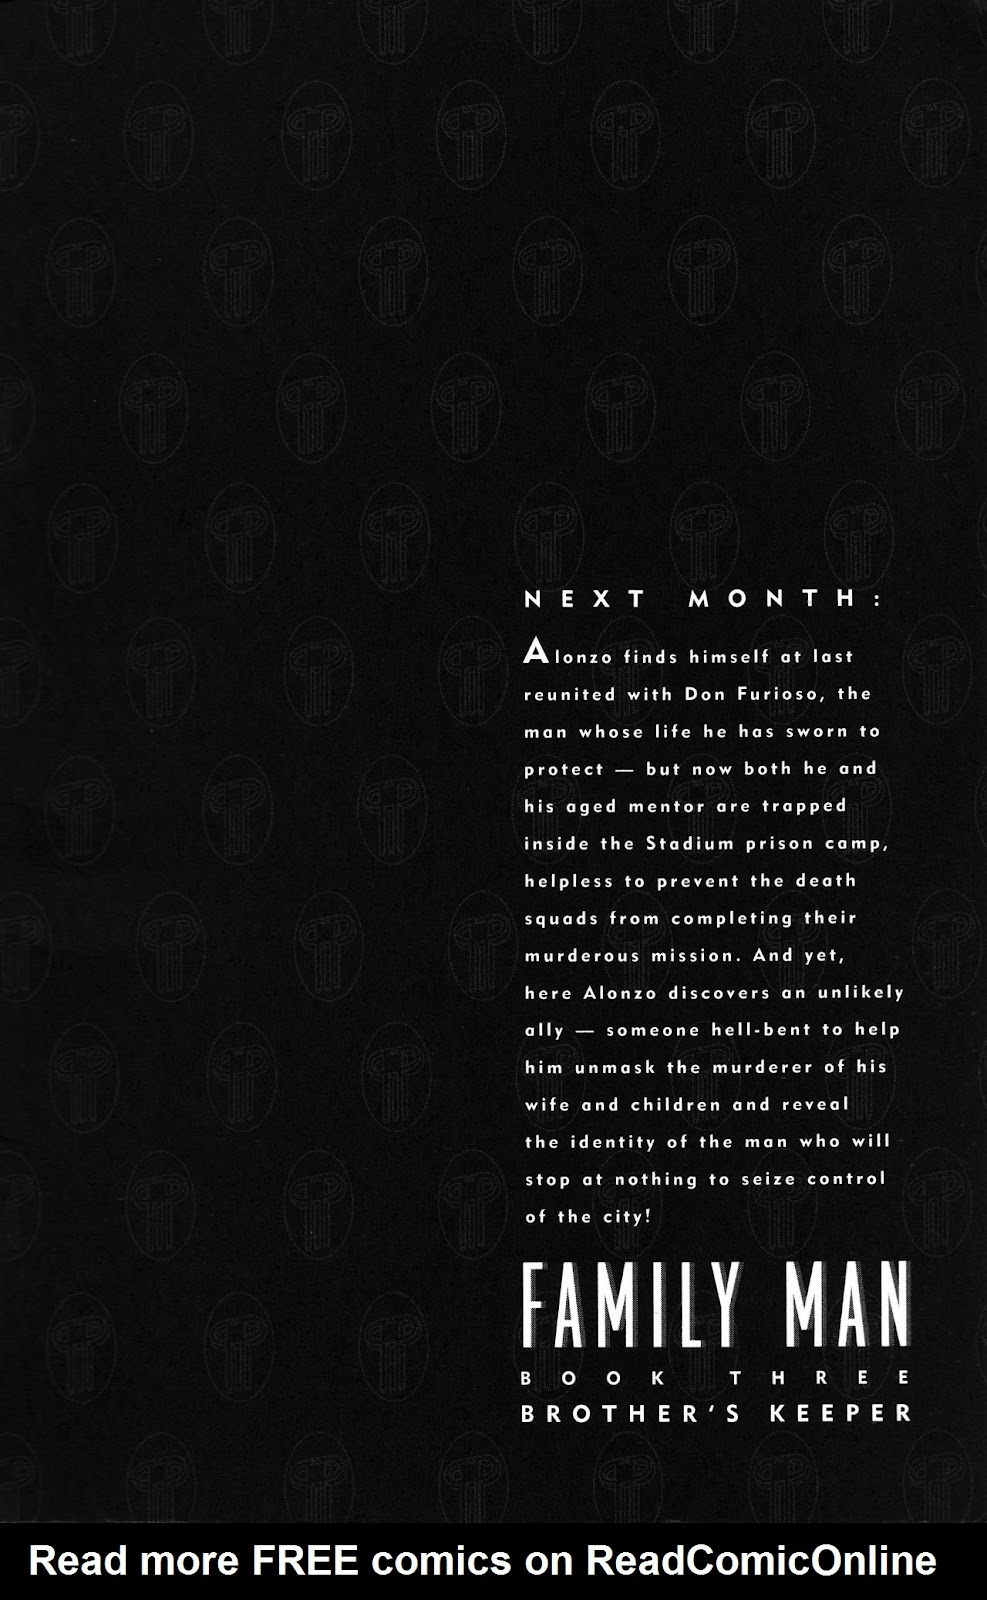 Read online Family Man comic -  Issue #2 - 100